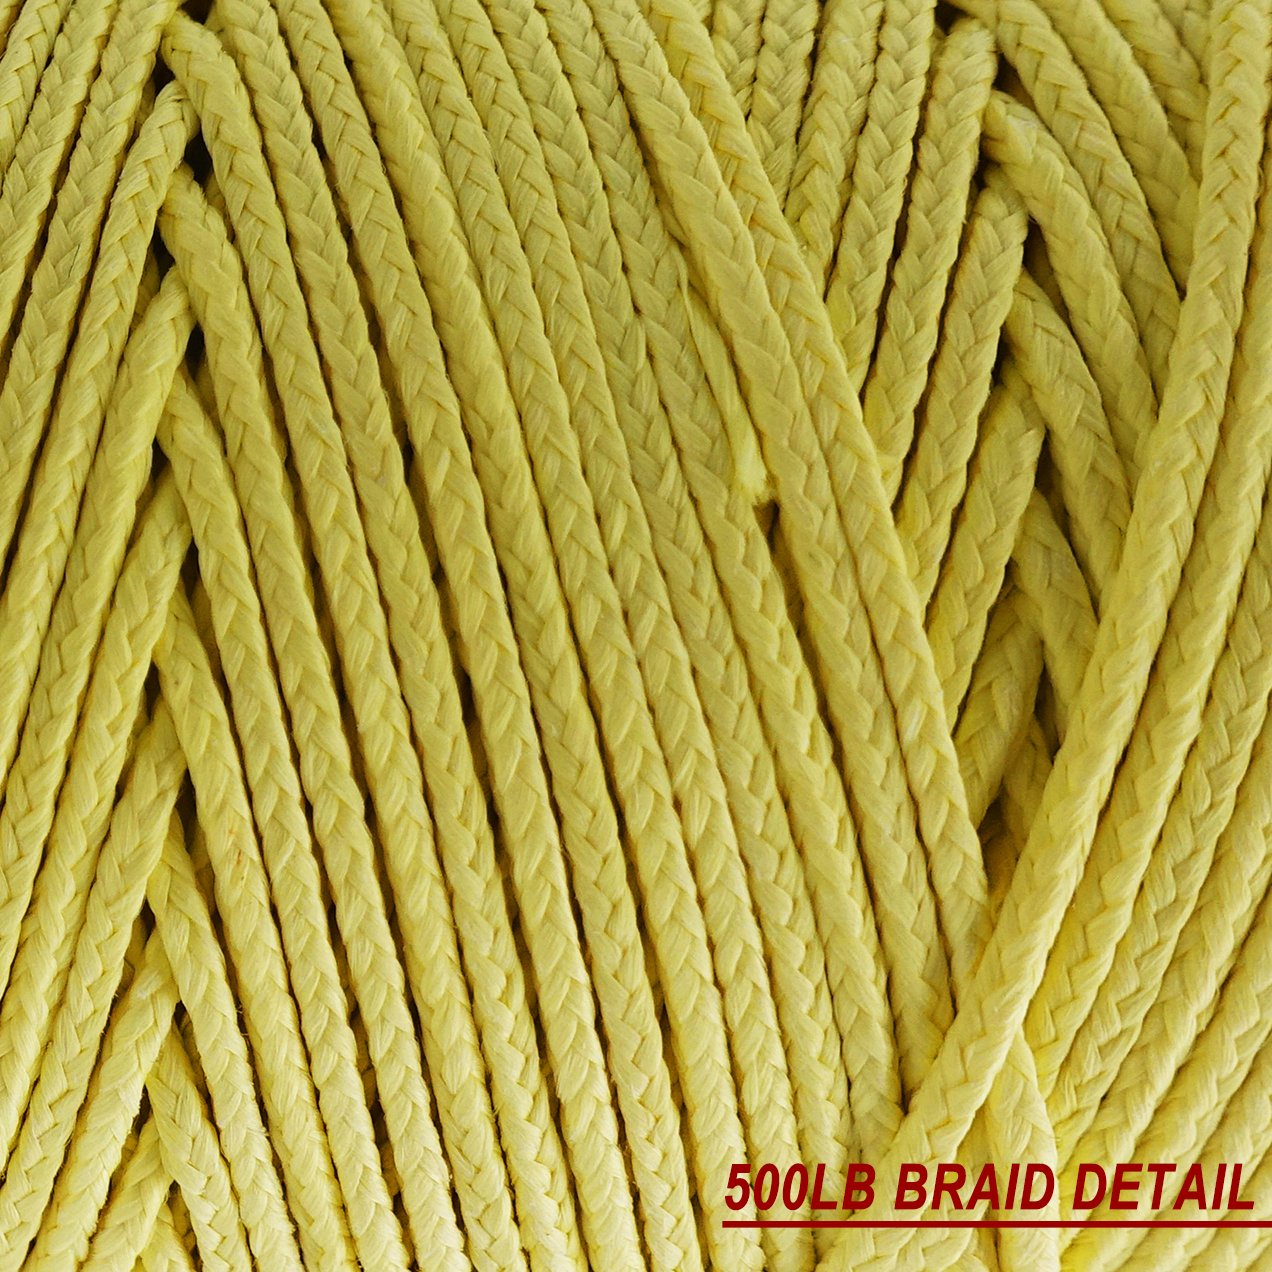 emma kites Kevlar Braided Cord 750lb 300ft High Strength Low Stretch Tent Tarp Guyline Suspension for Camping Hiking Backpacking Recreational Marine Outdoors Activities by emma kites (Image #3)